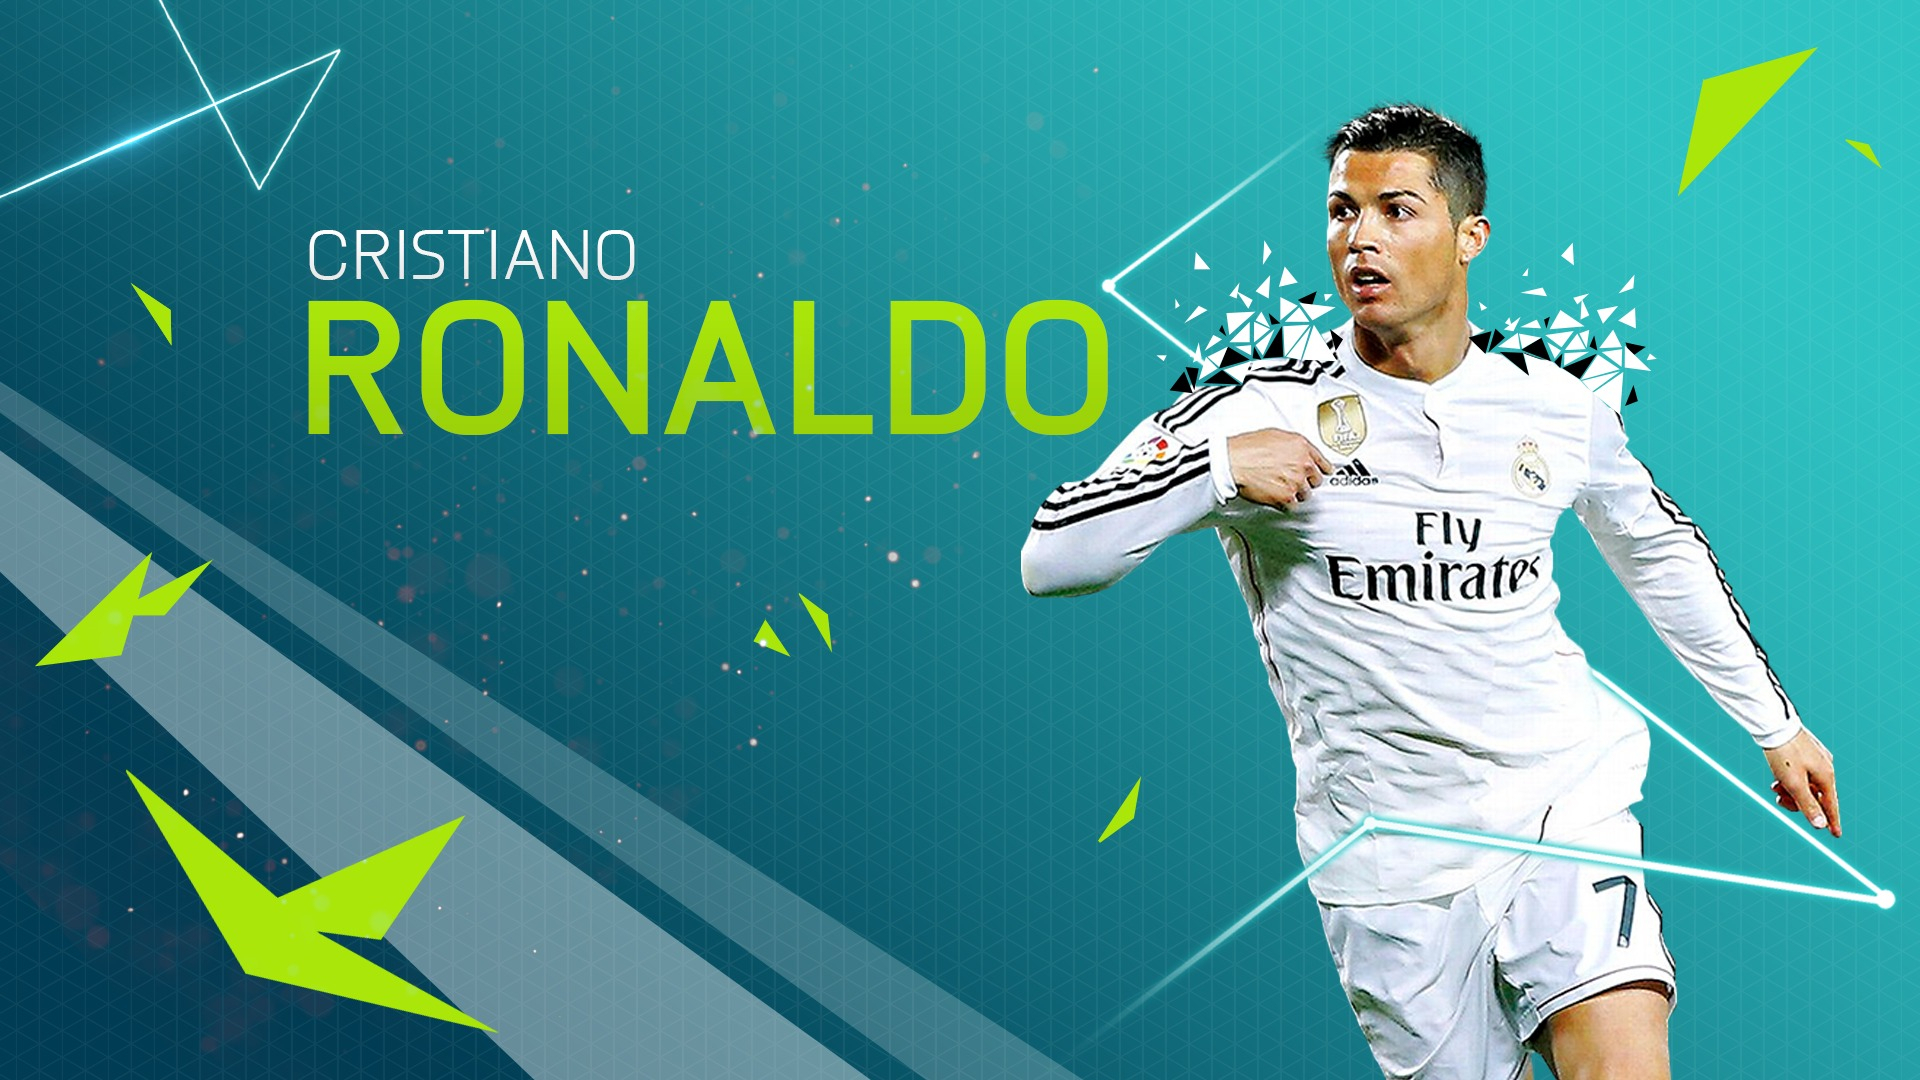 3afeabaa7 Cristiano Ronaldo Wallpaper Hd Pes WALLPAPER PICTURE GALLERY 1920x1080